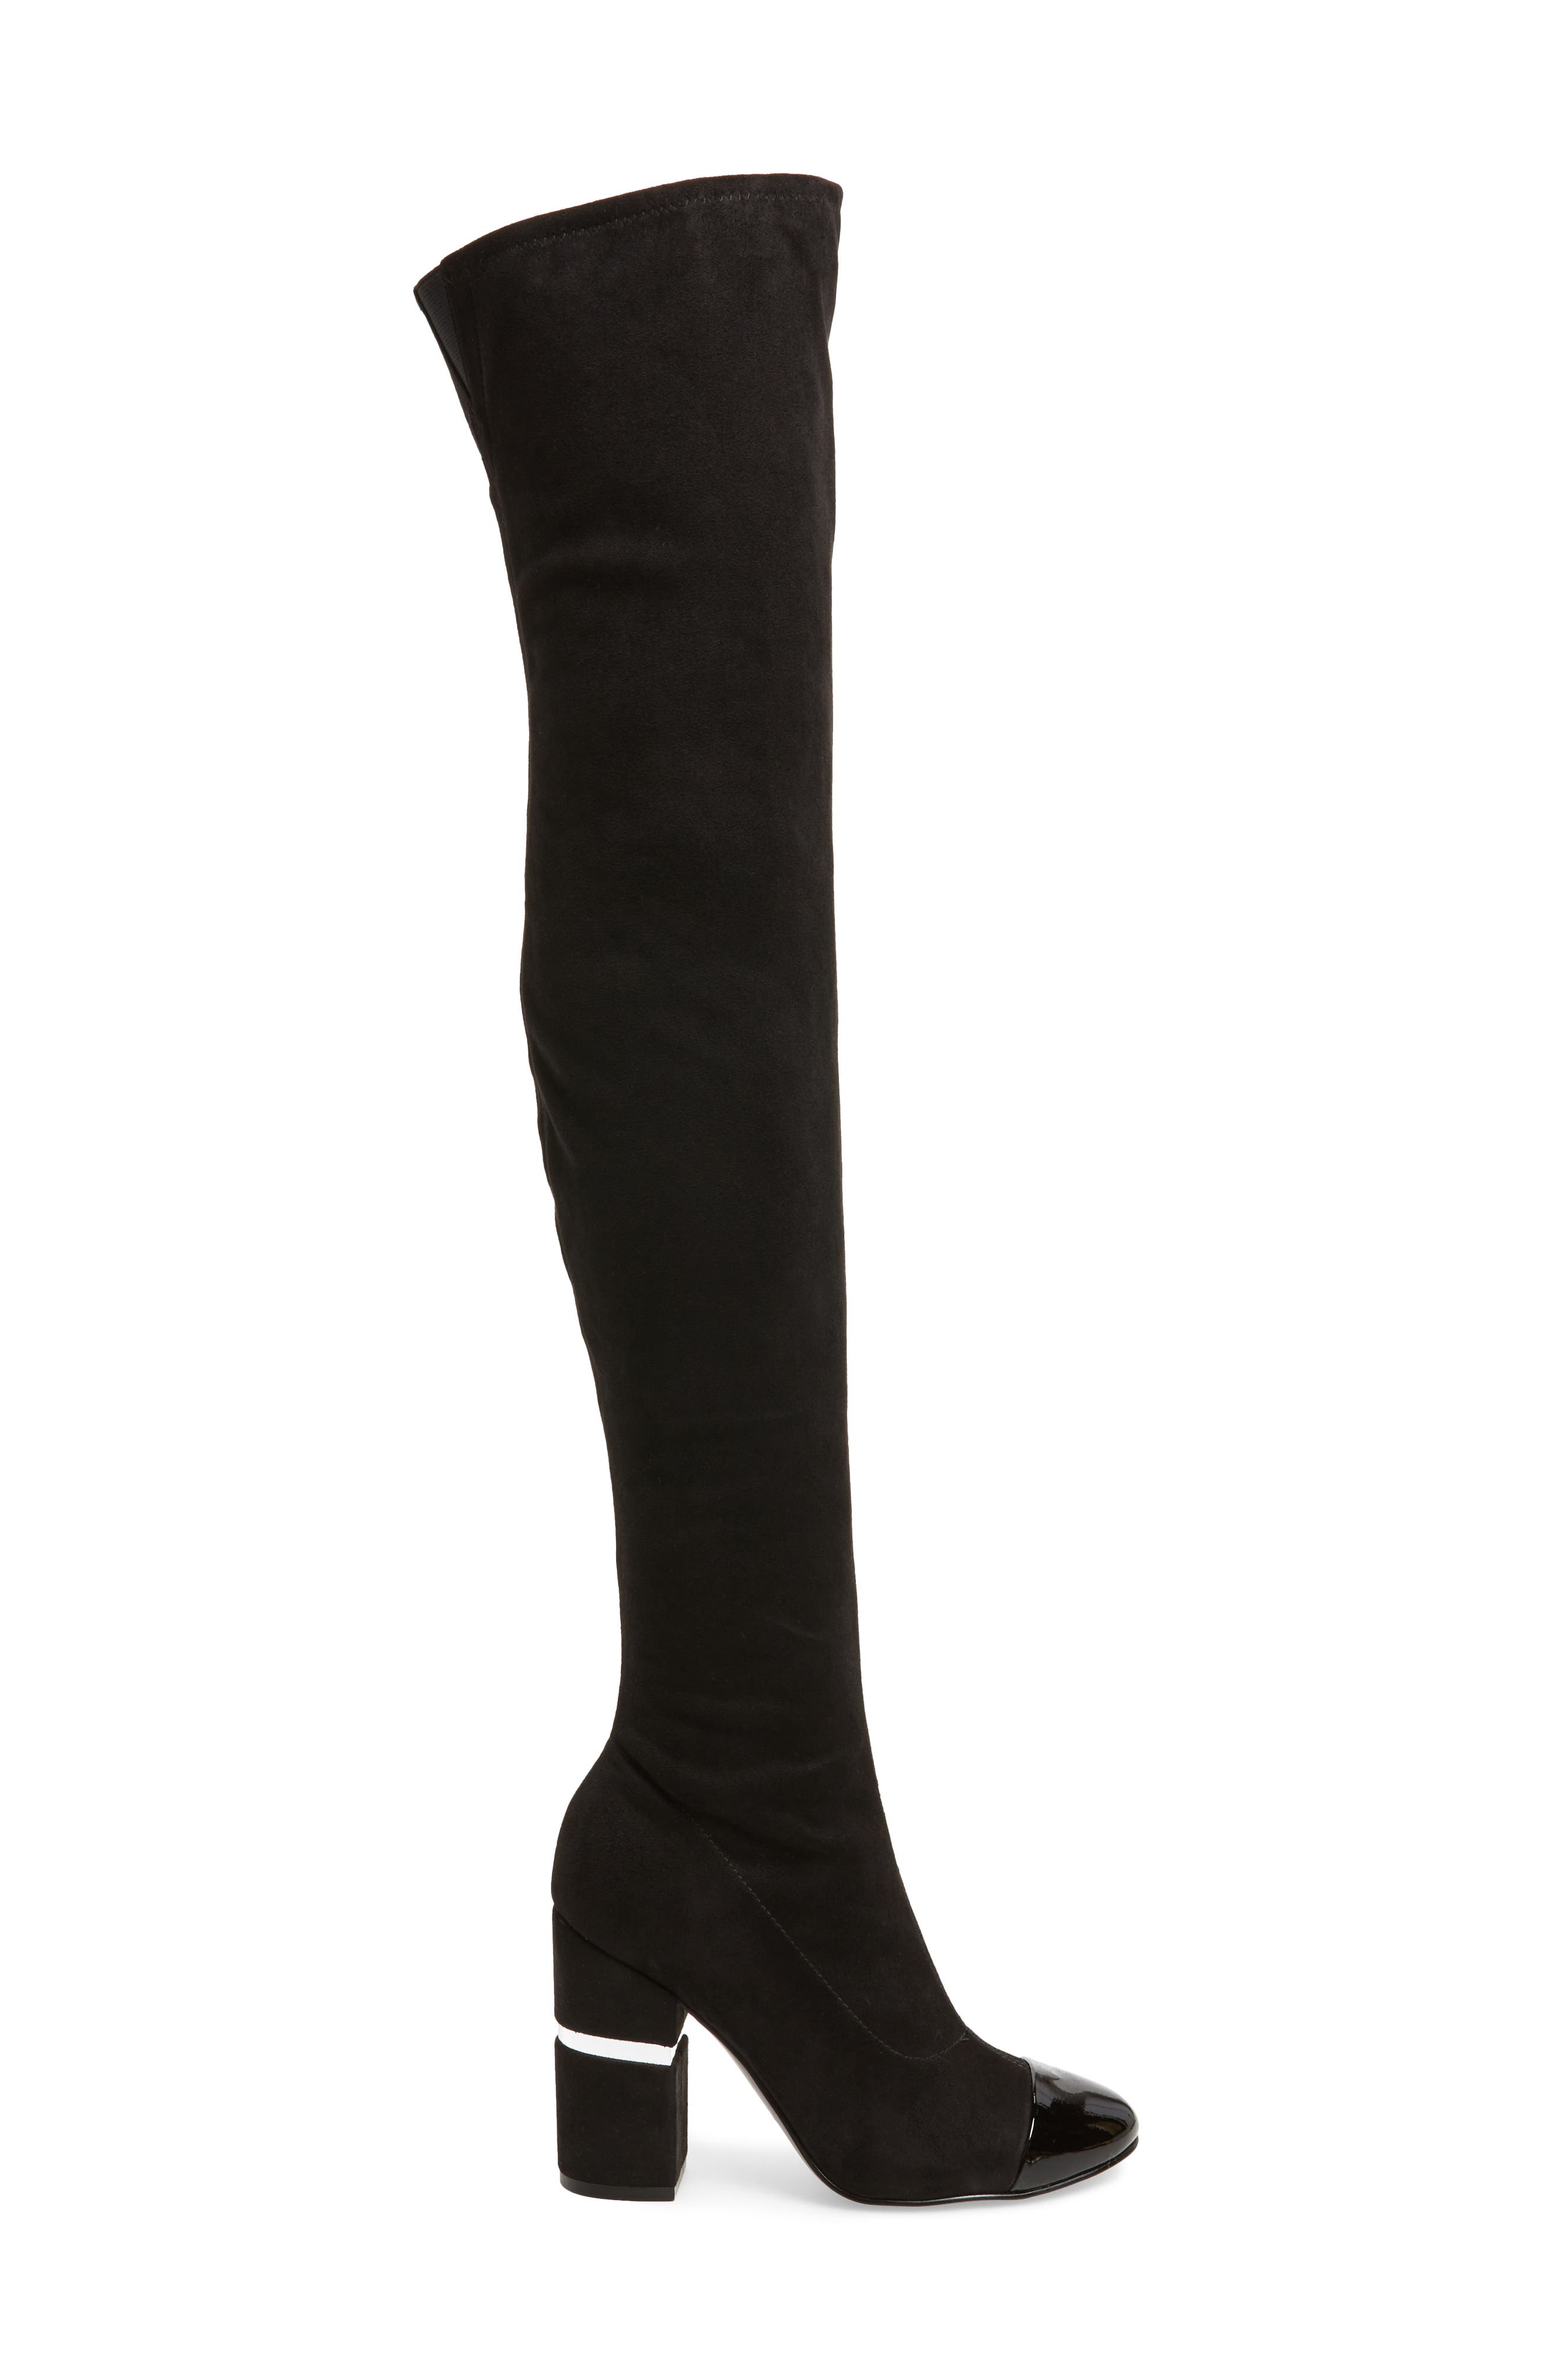 Petel Over the Knee Boot,                             Alternate thumbnail 3, color,                             Black Faux Suede